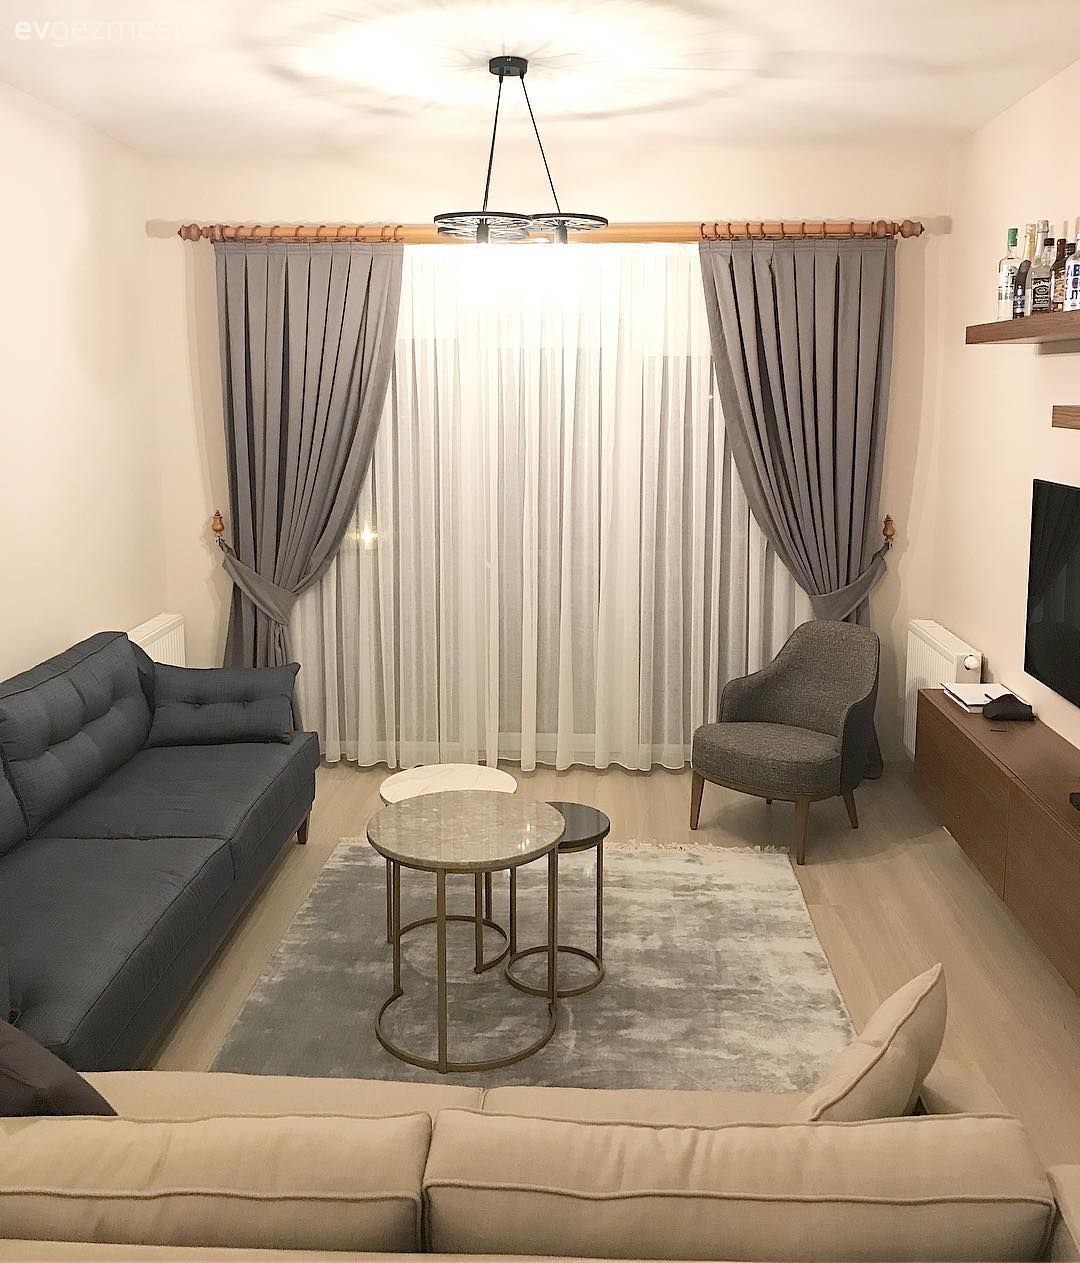 100+ Background Curtain Model and Decoration Ideas | House Trip -  A comfortable and friendly house in a modern line.  - #antiquedecor #apartmentdecor #background #bedroomdecor #curtain #decoration #homedecor #house #ideas #model #trip